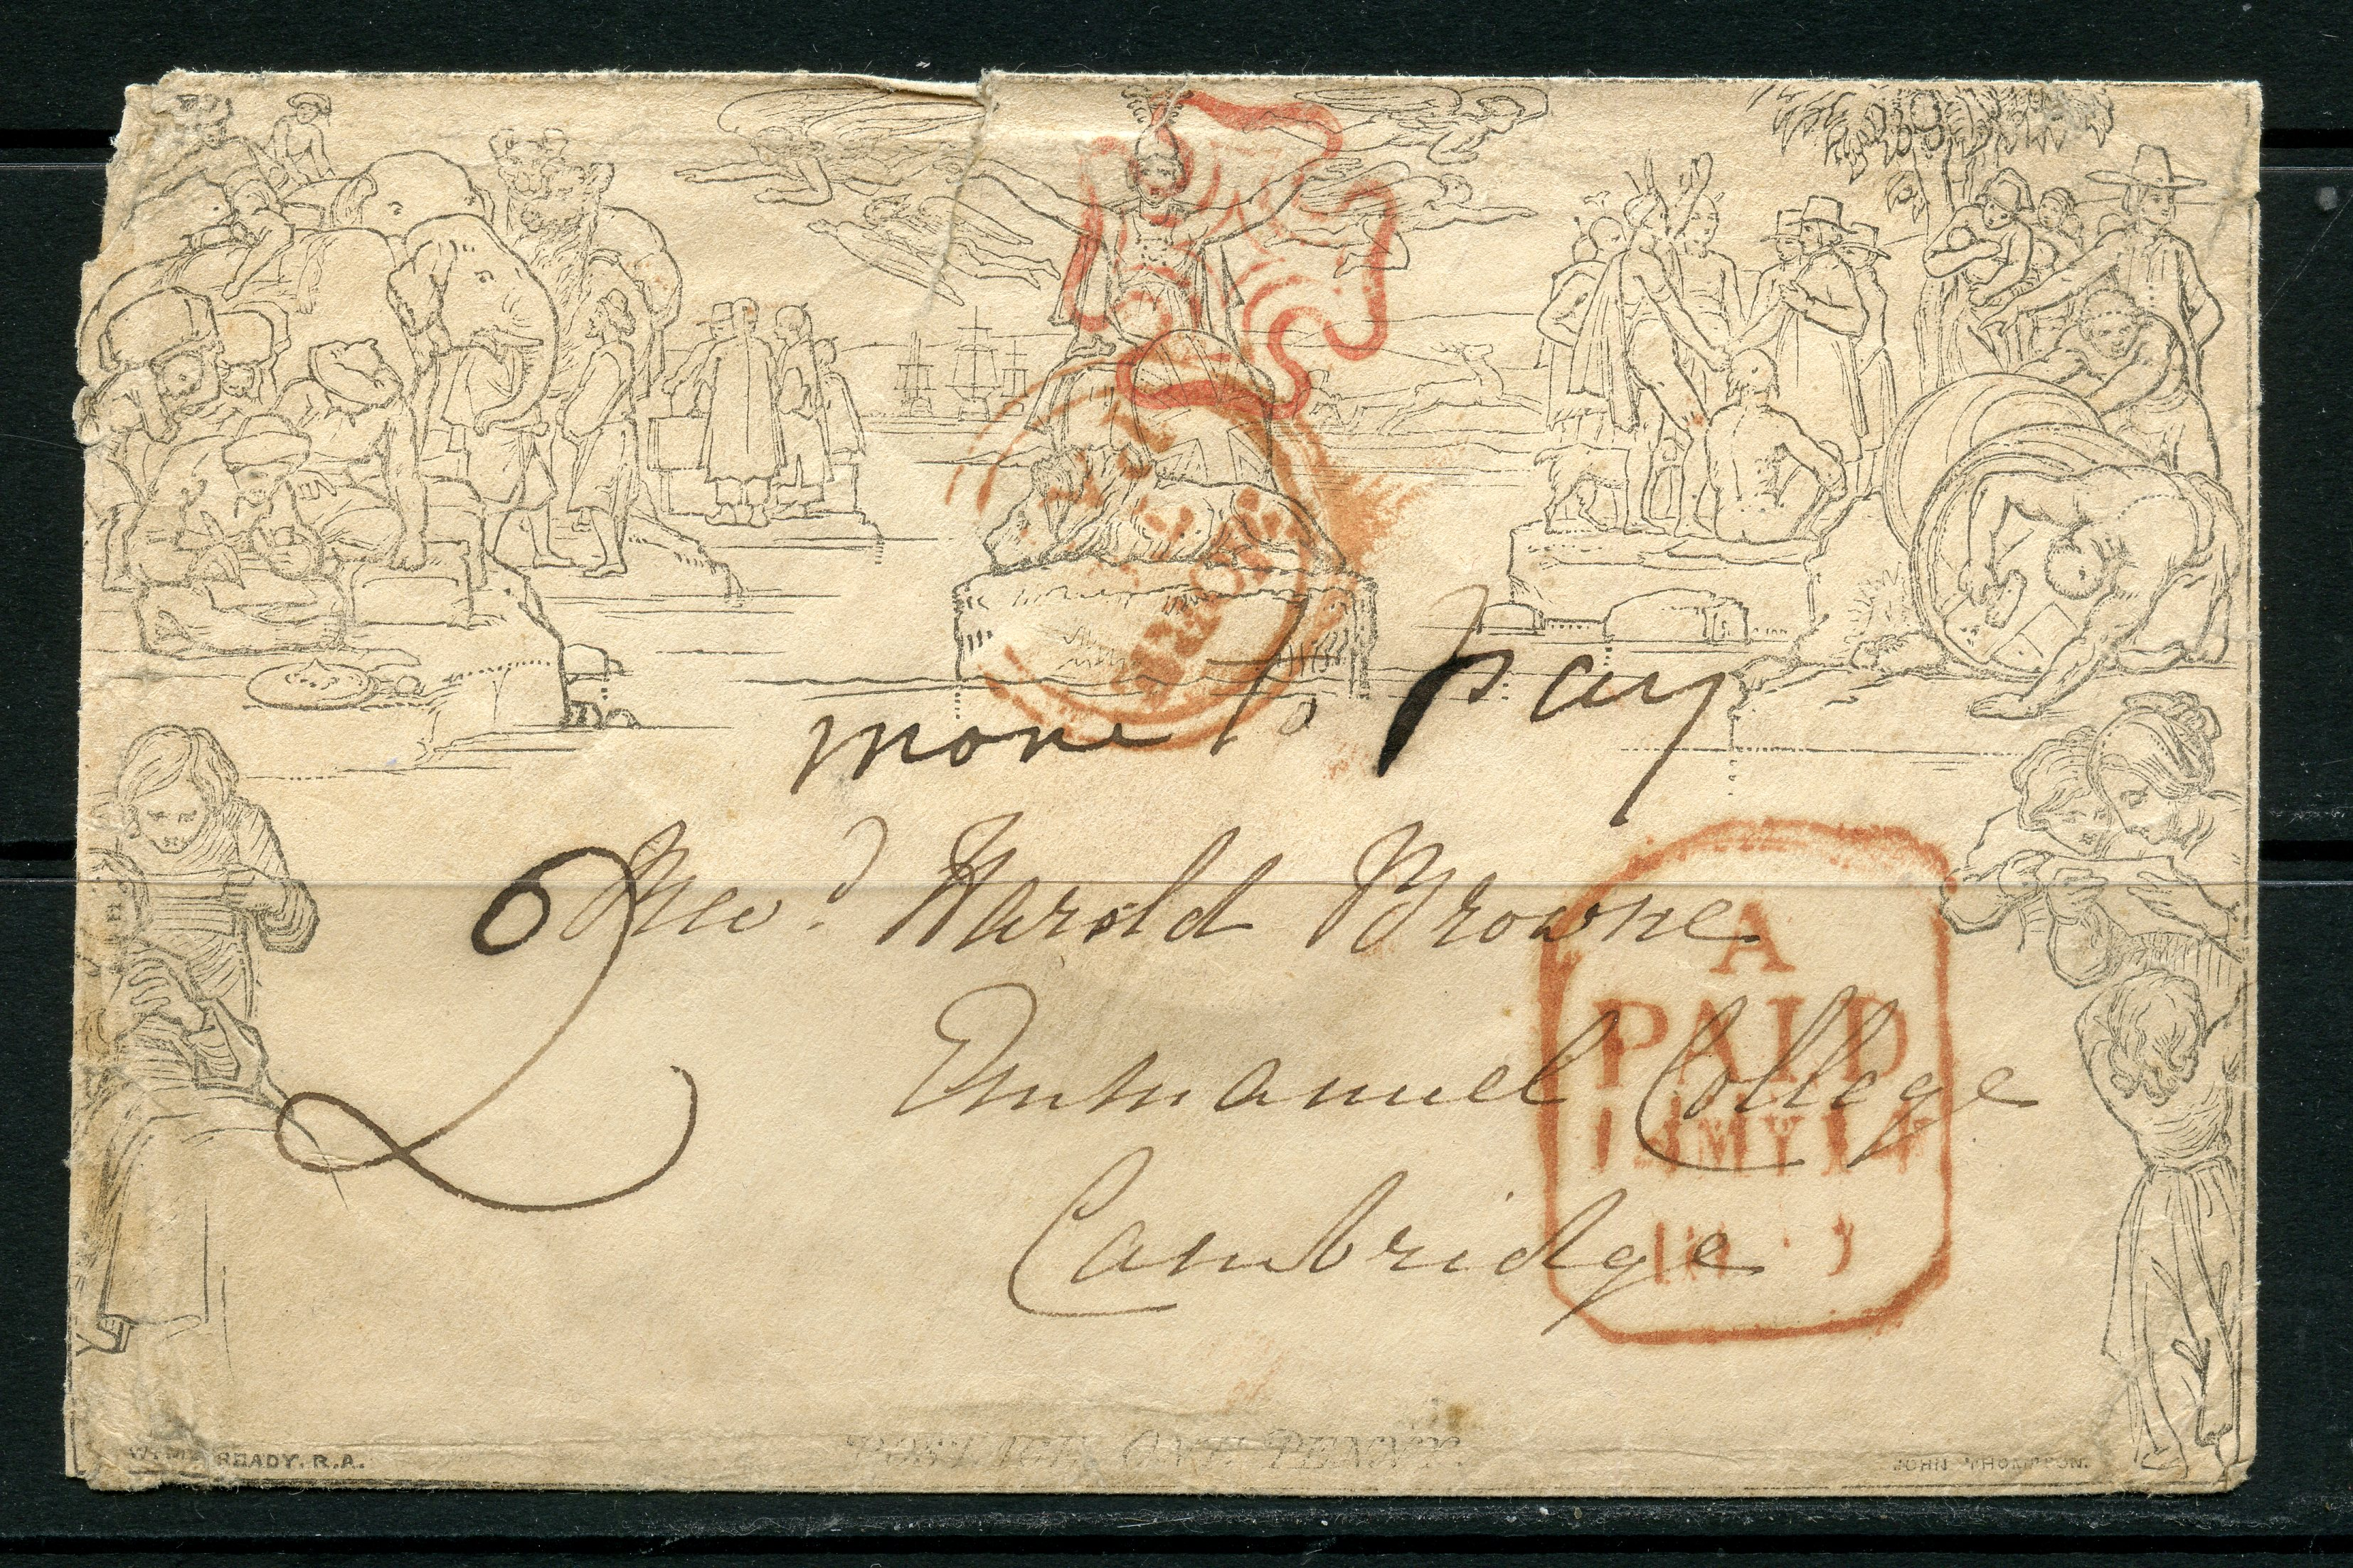 1840 Mulready 1d envelope May 12 Bath via London to Cambridge cancelled with red MX, but rated at